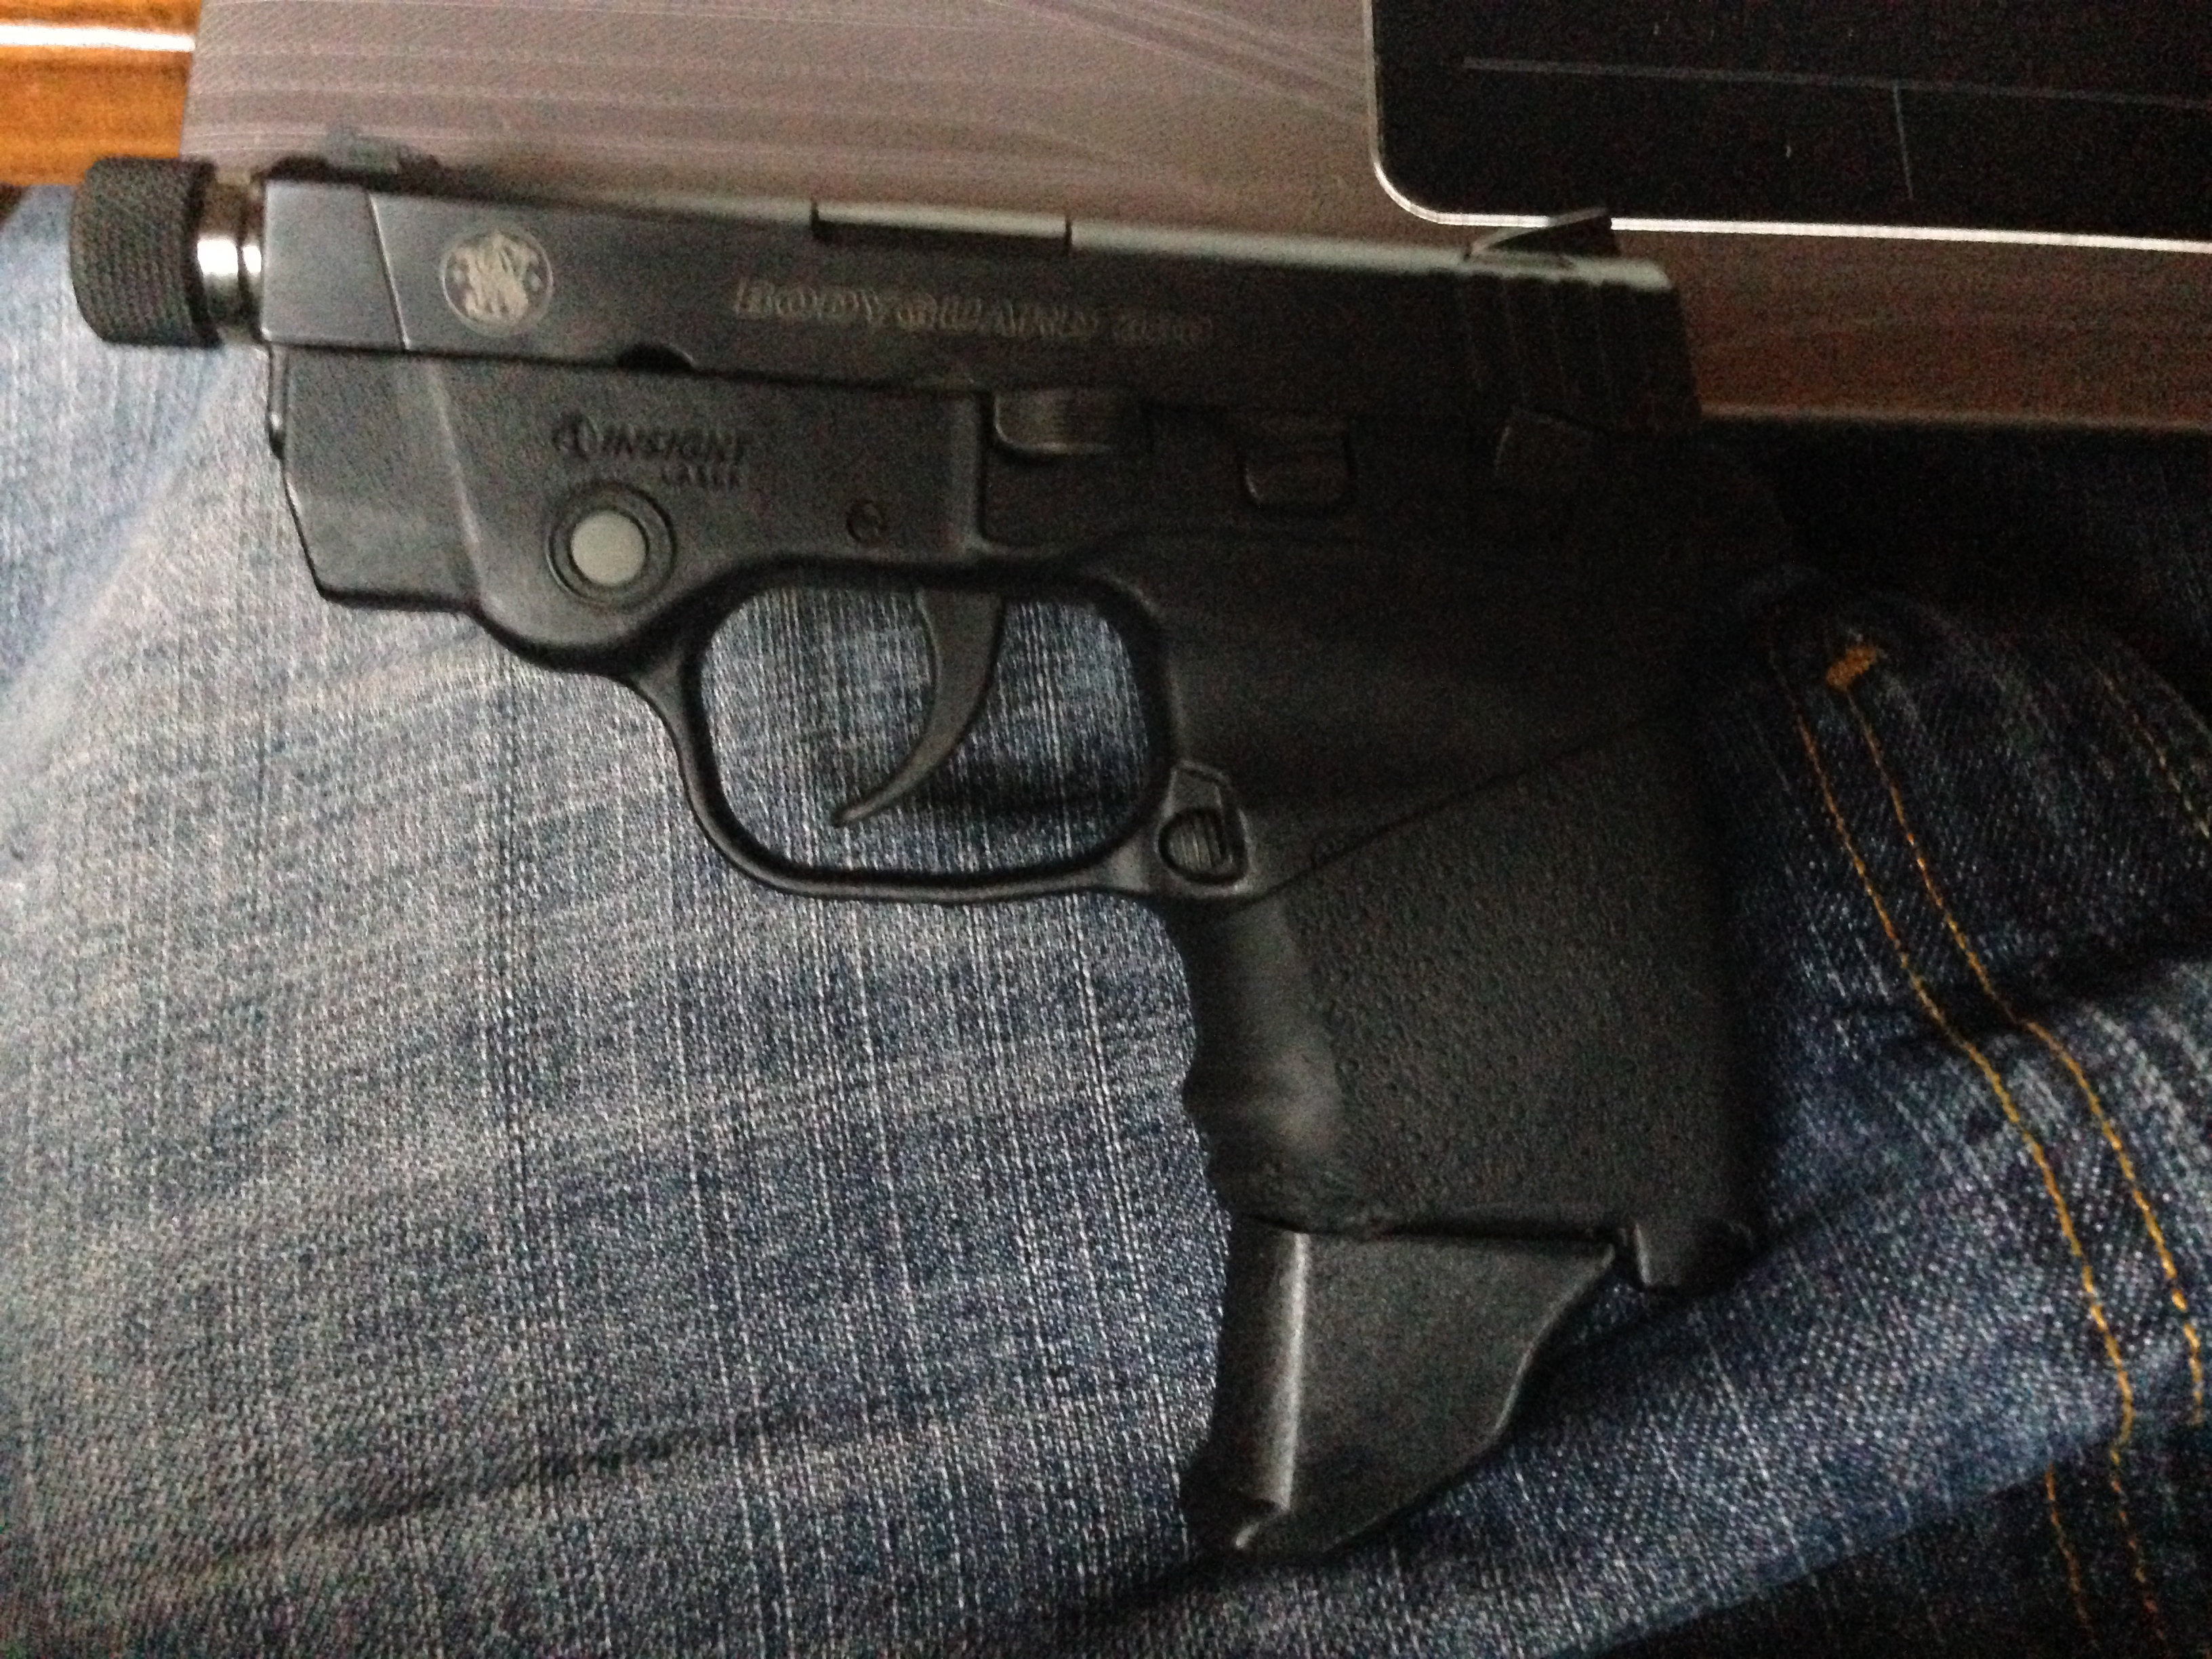 Thoughts on a deep concealment gun that's smaller than an LCR/j